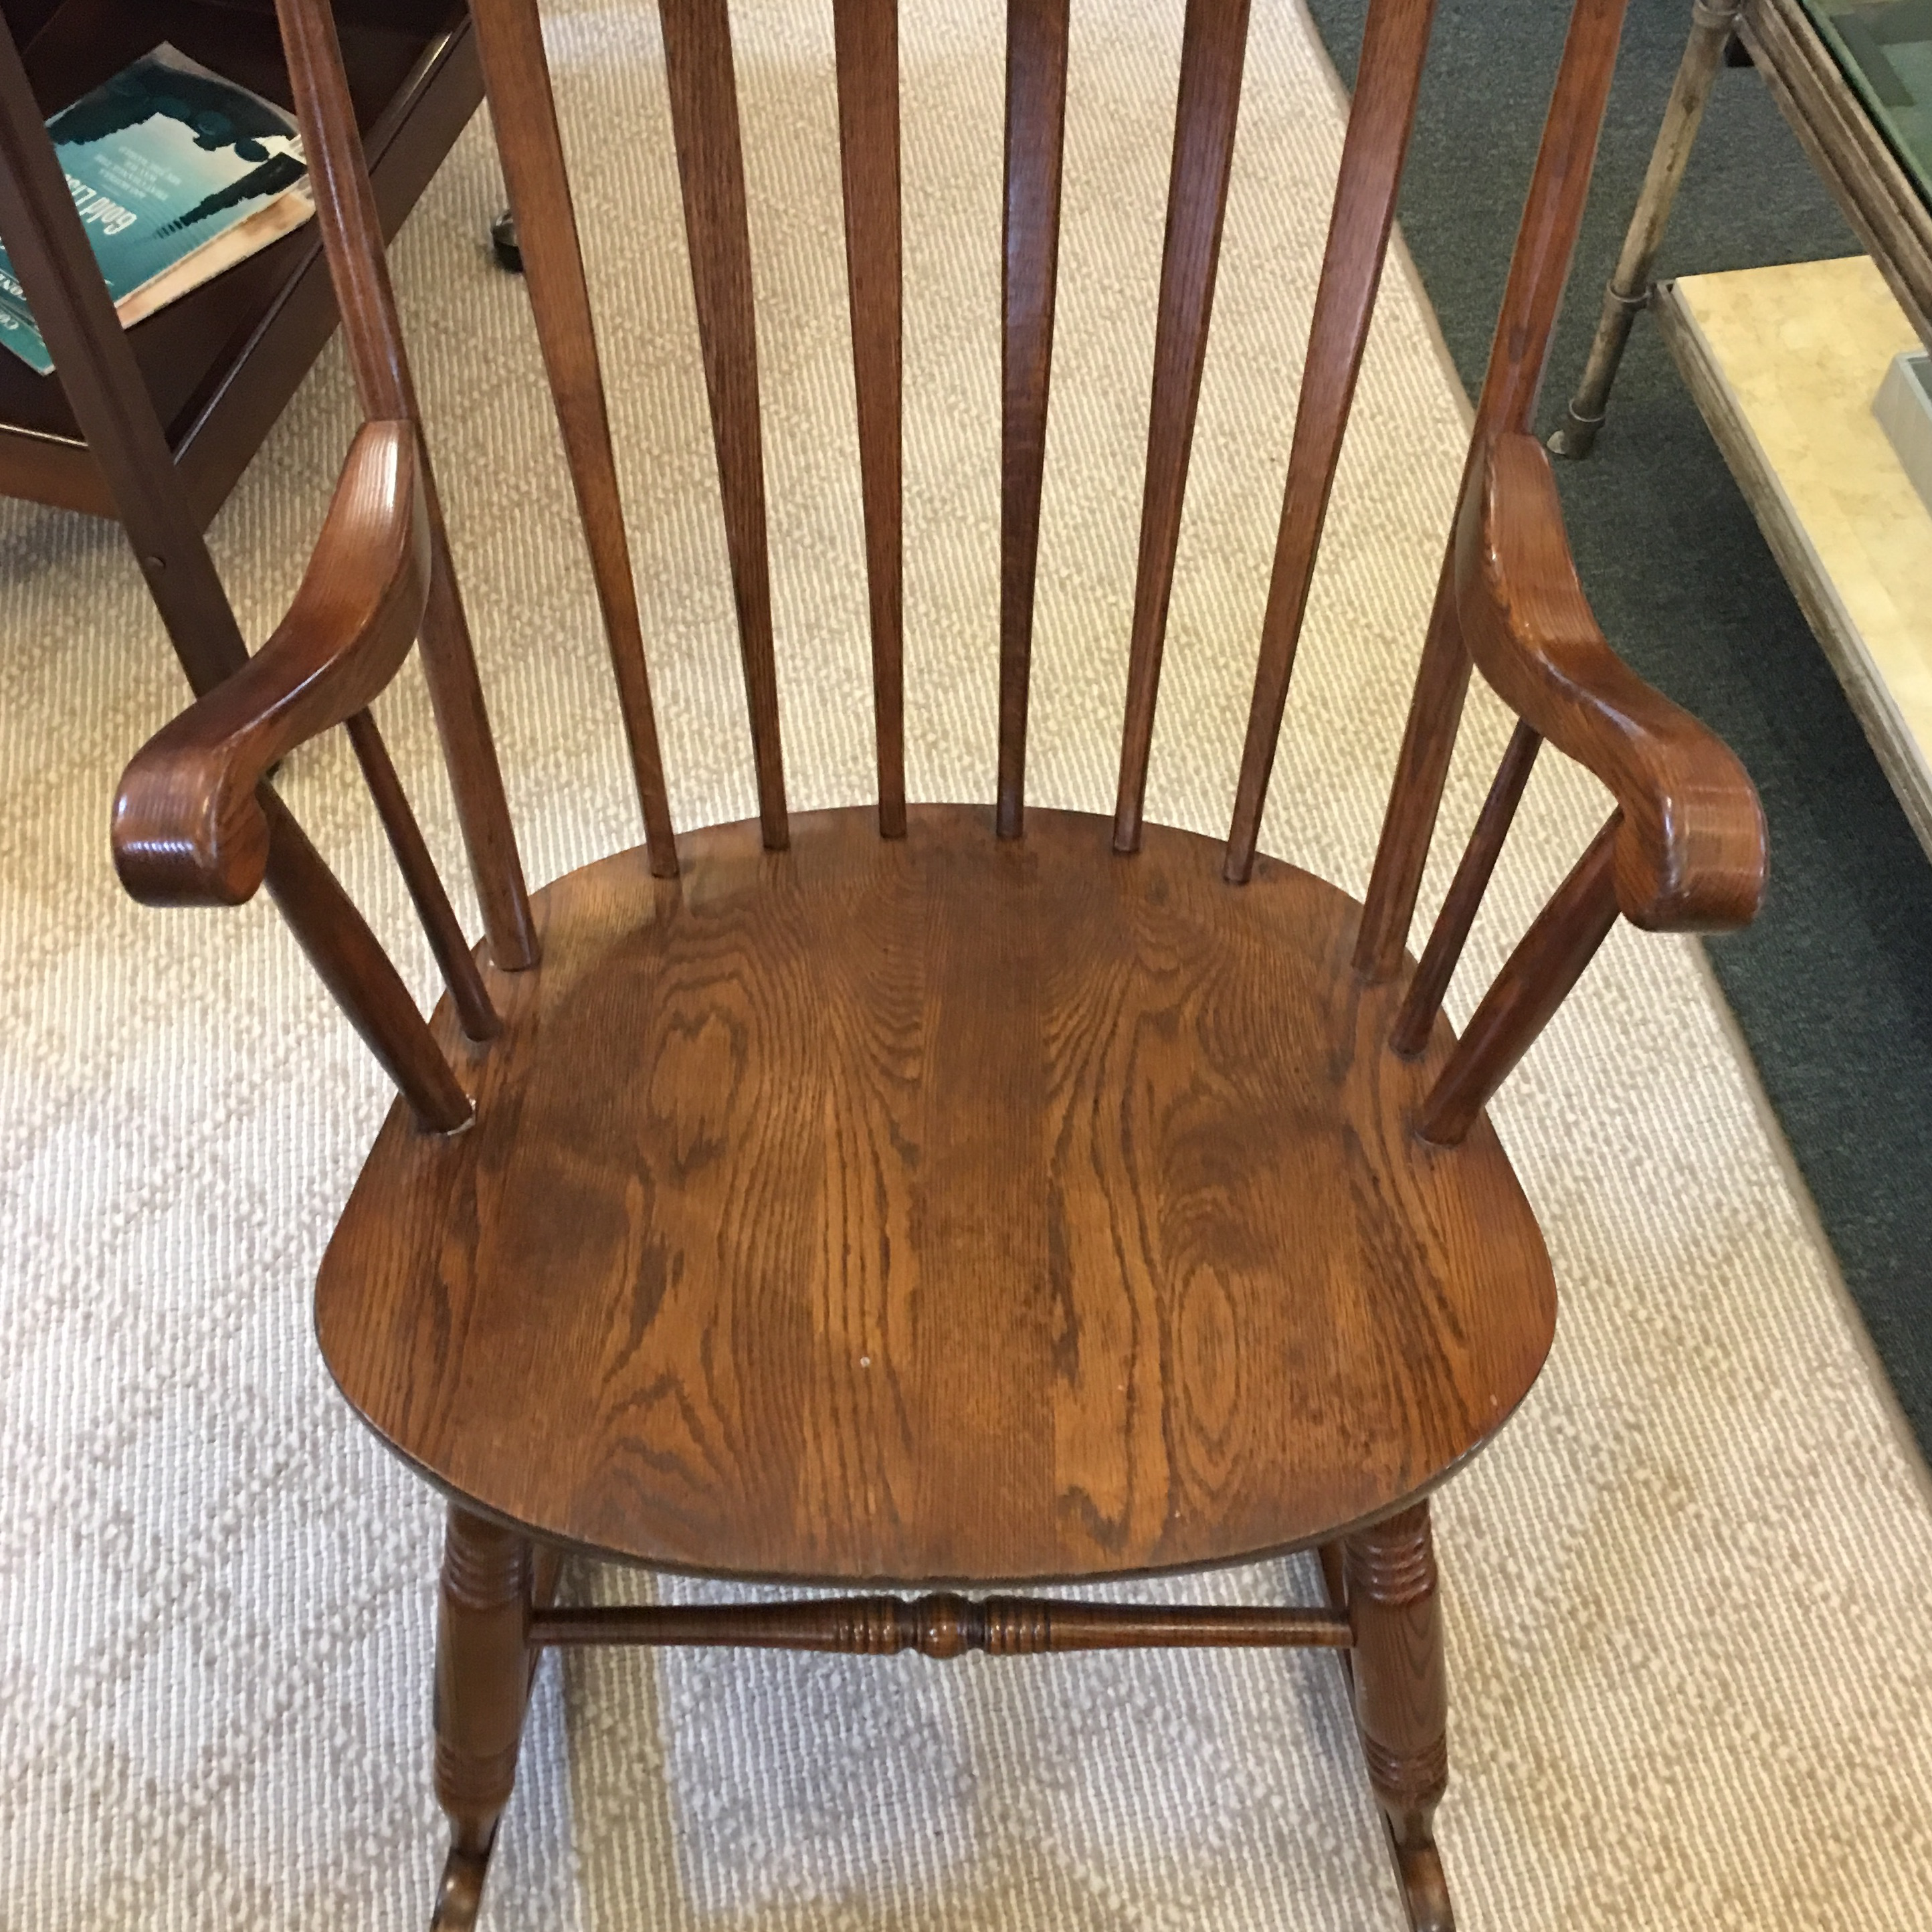 British Colonial Vintage S. Bent U0026 Bros. Rocking Chair For Sale   Image 3